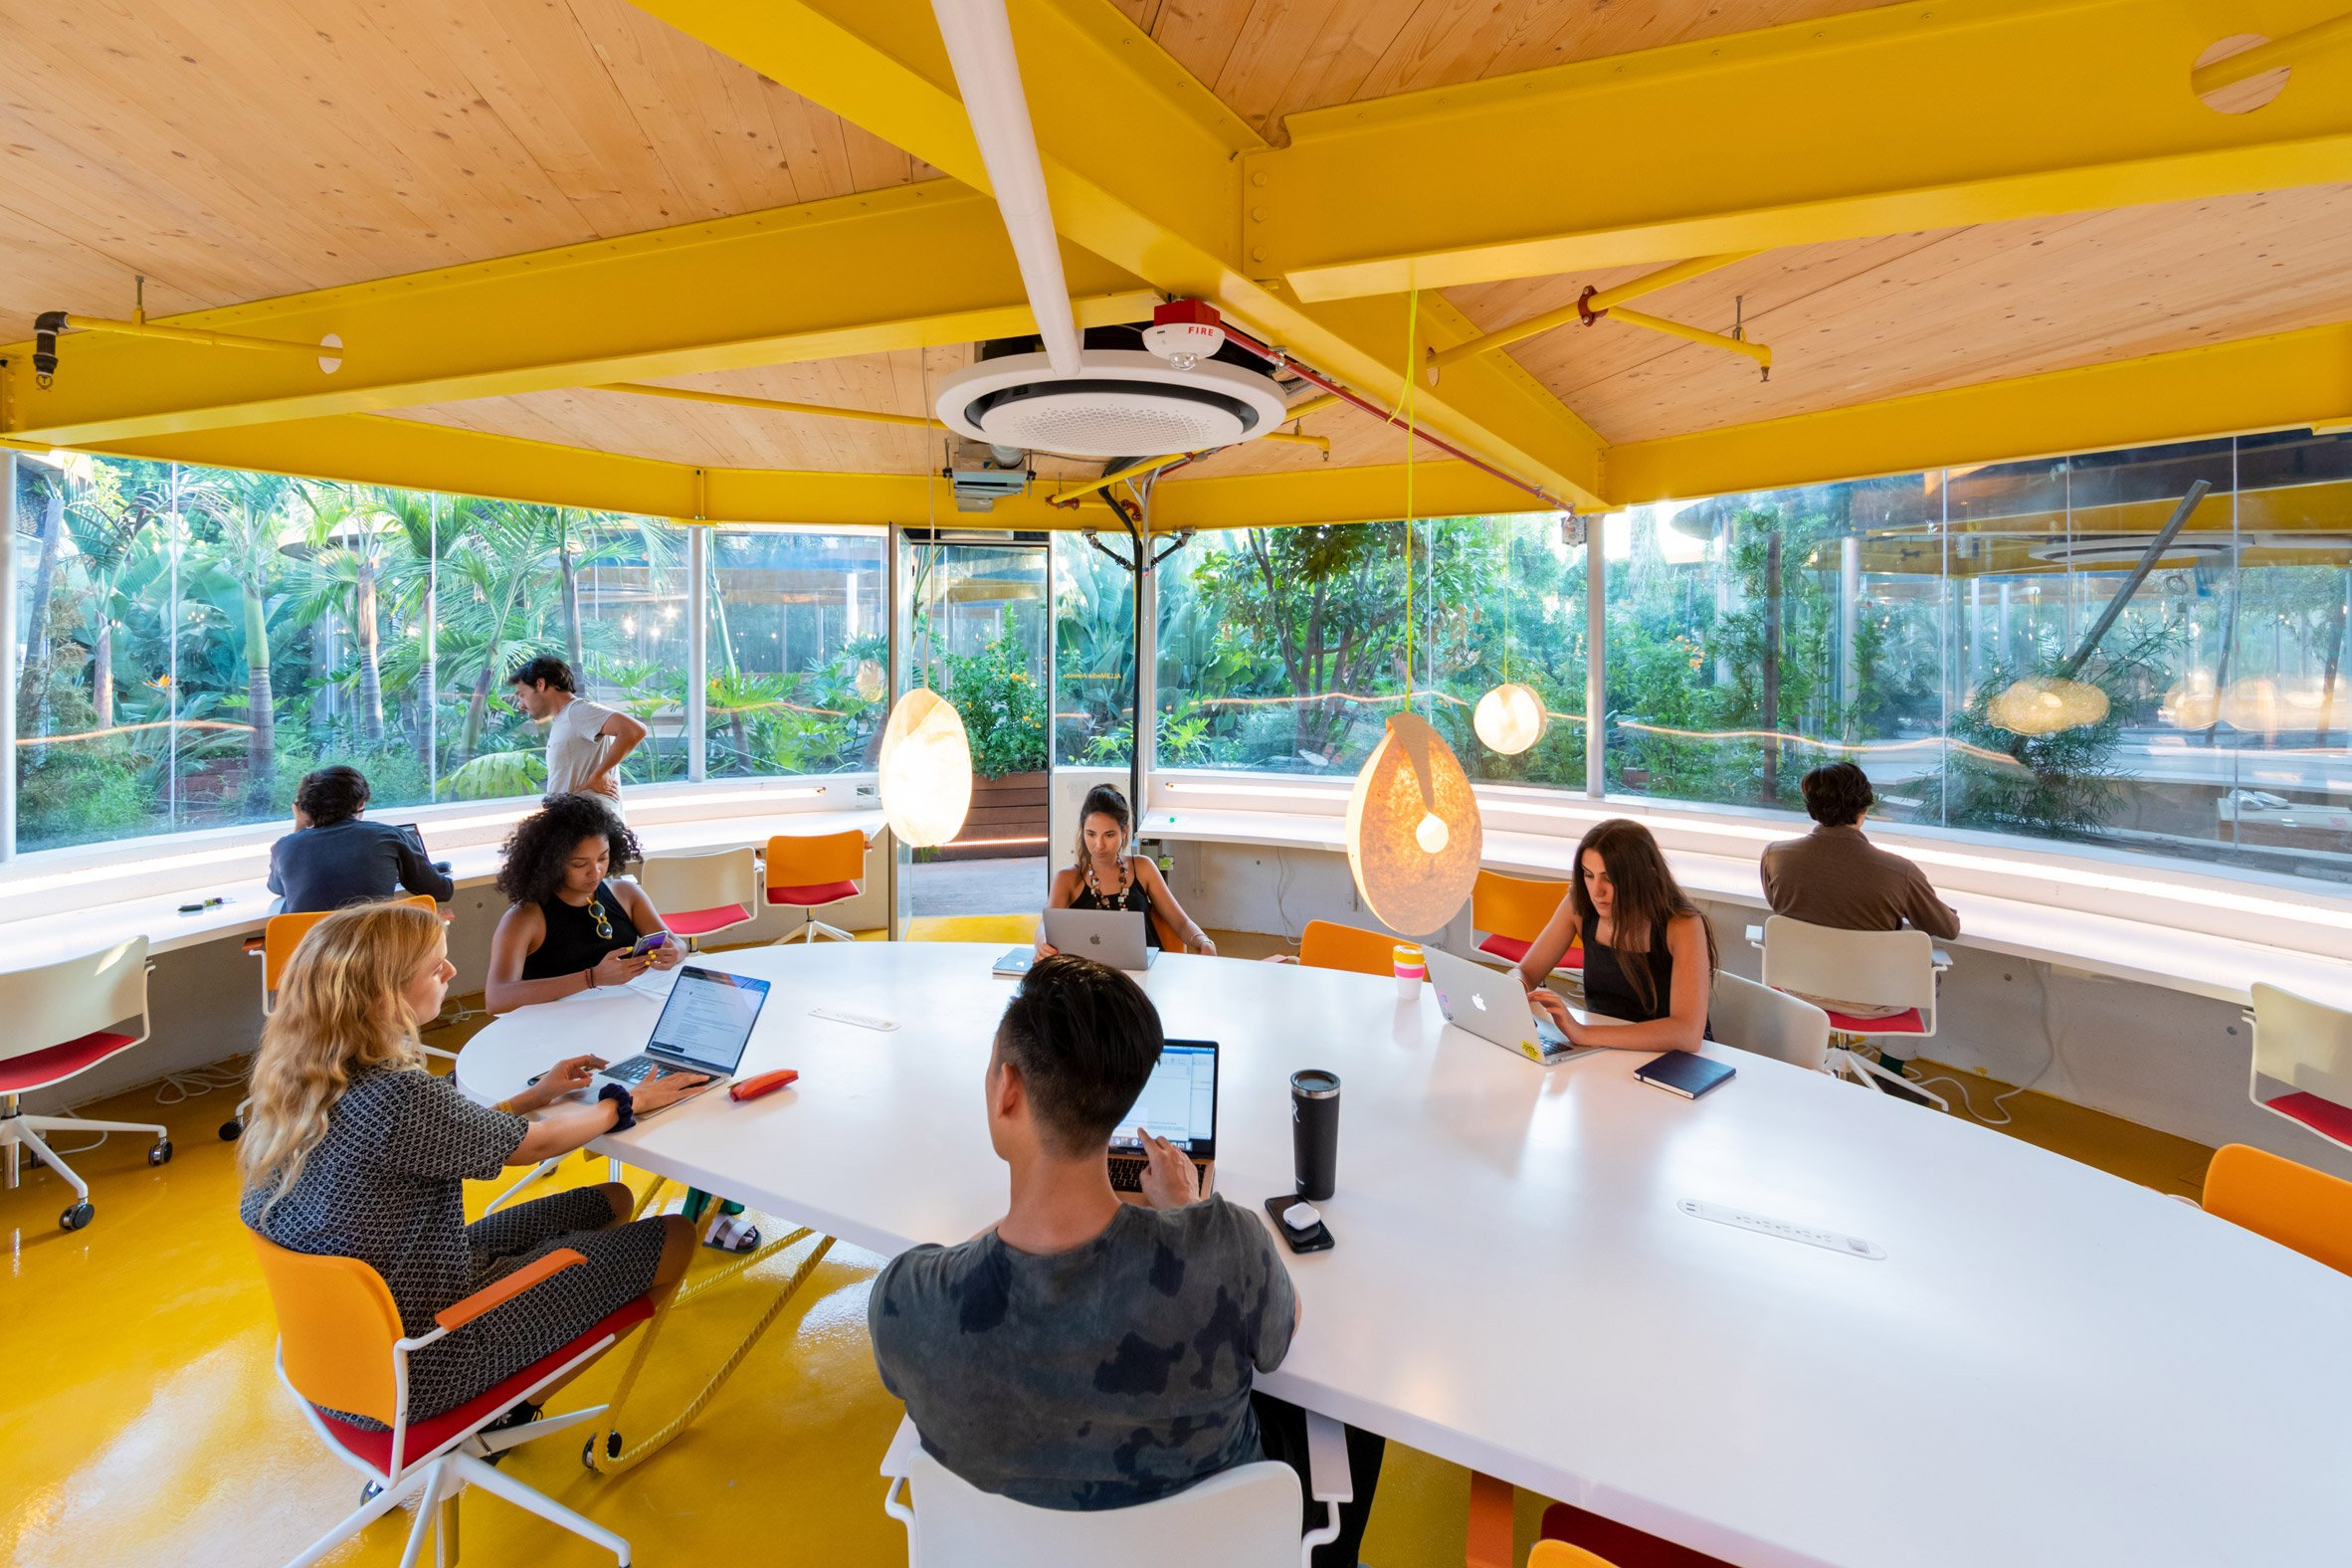 Second Home Hollywood is a co-working complex designed by SelgasCano